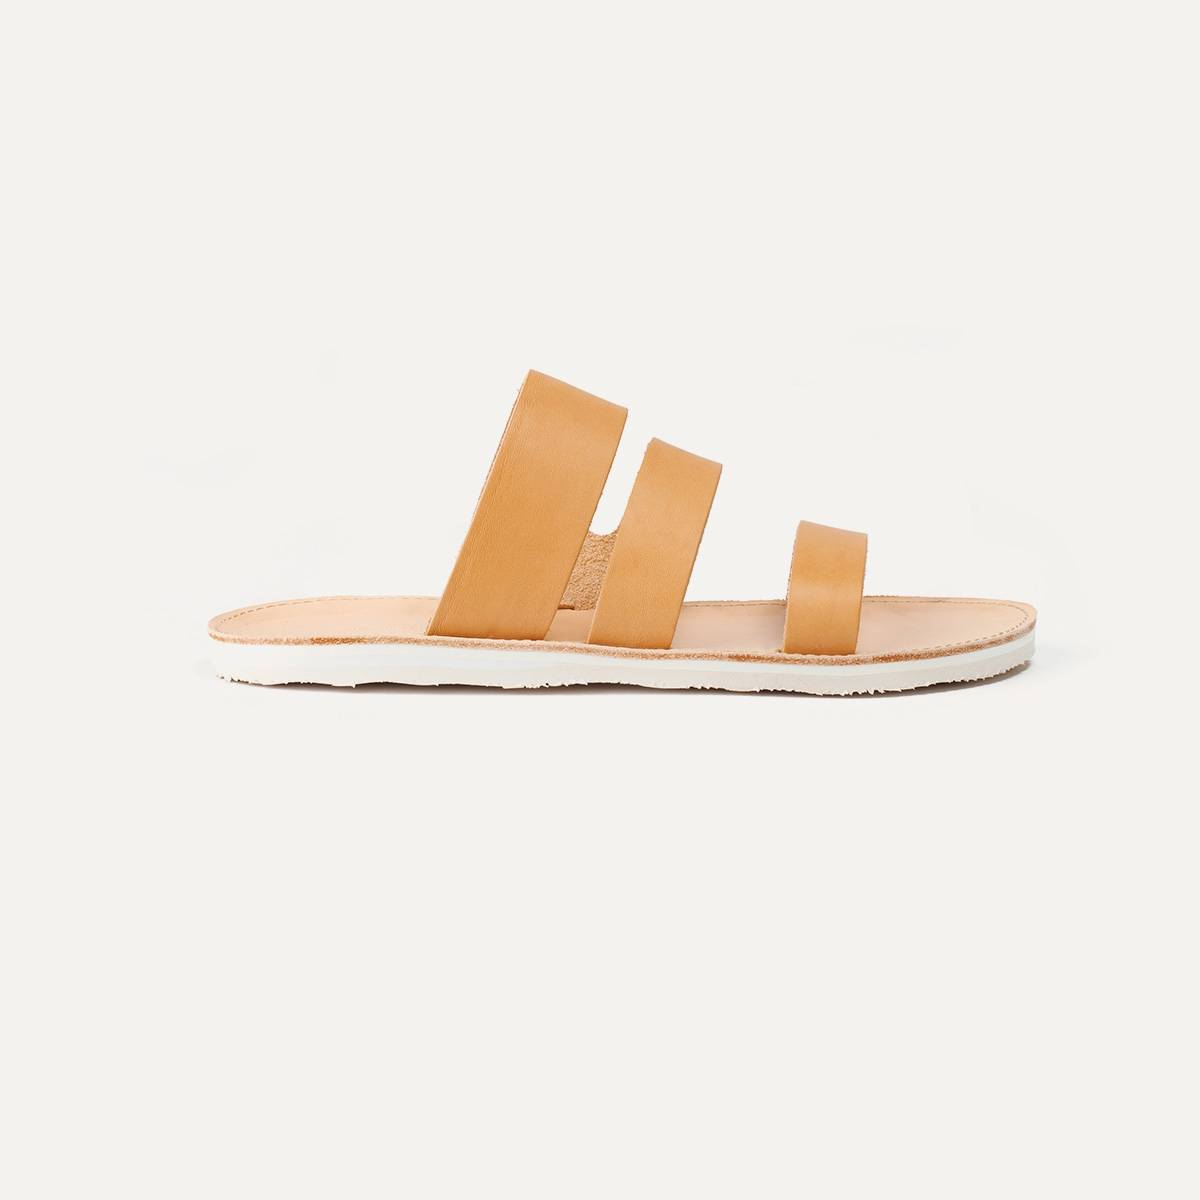 Athos leather sandals - Natural (image n°2)